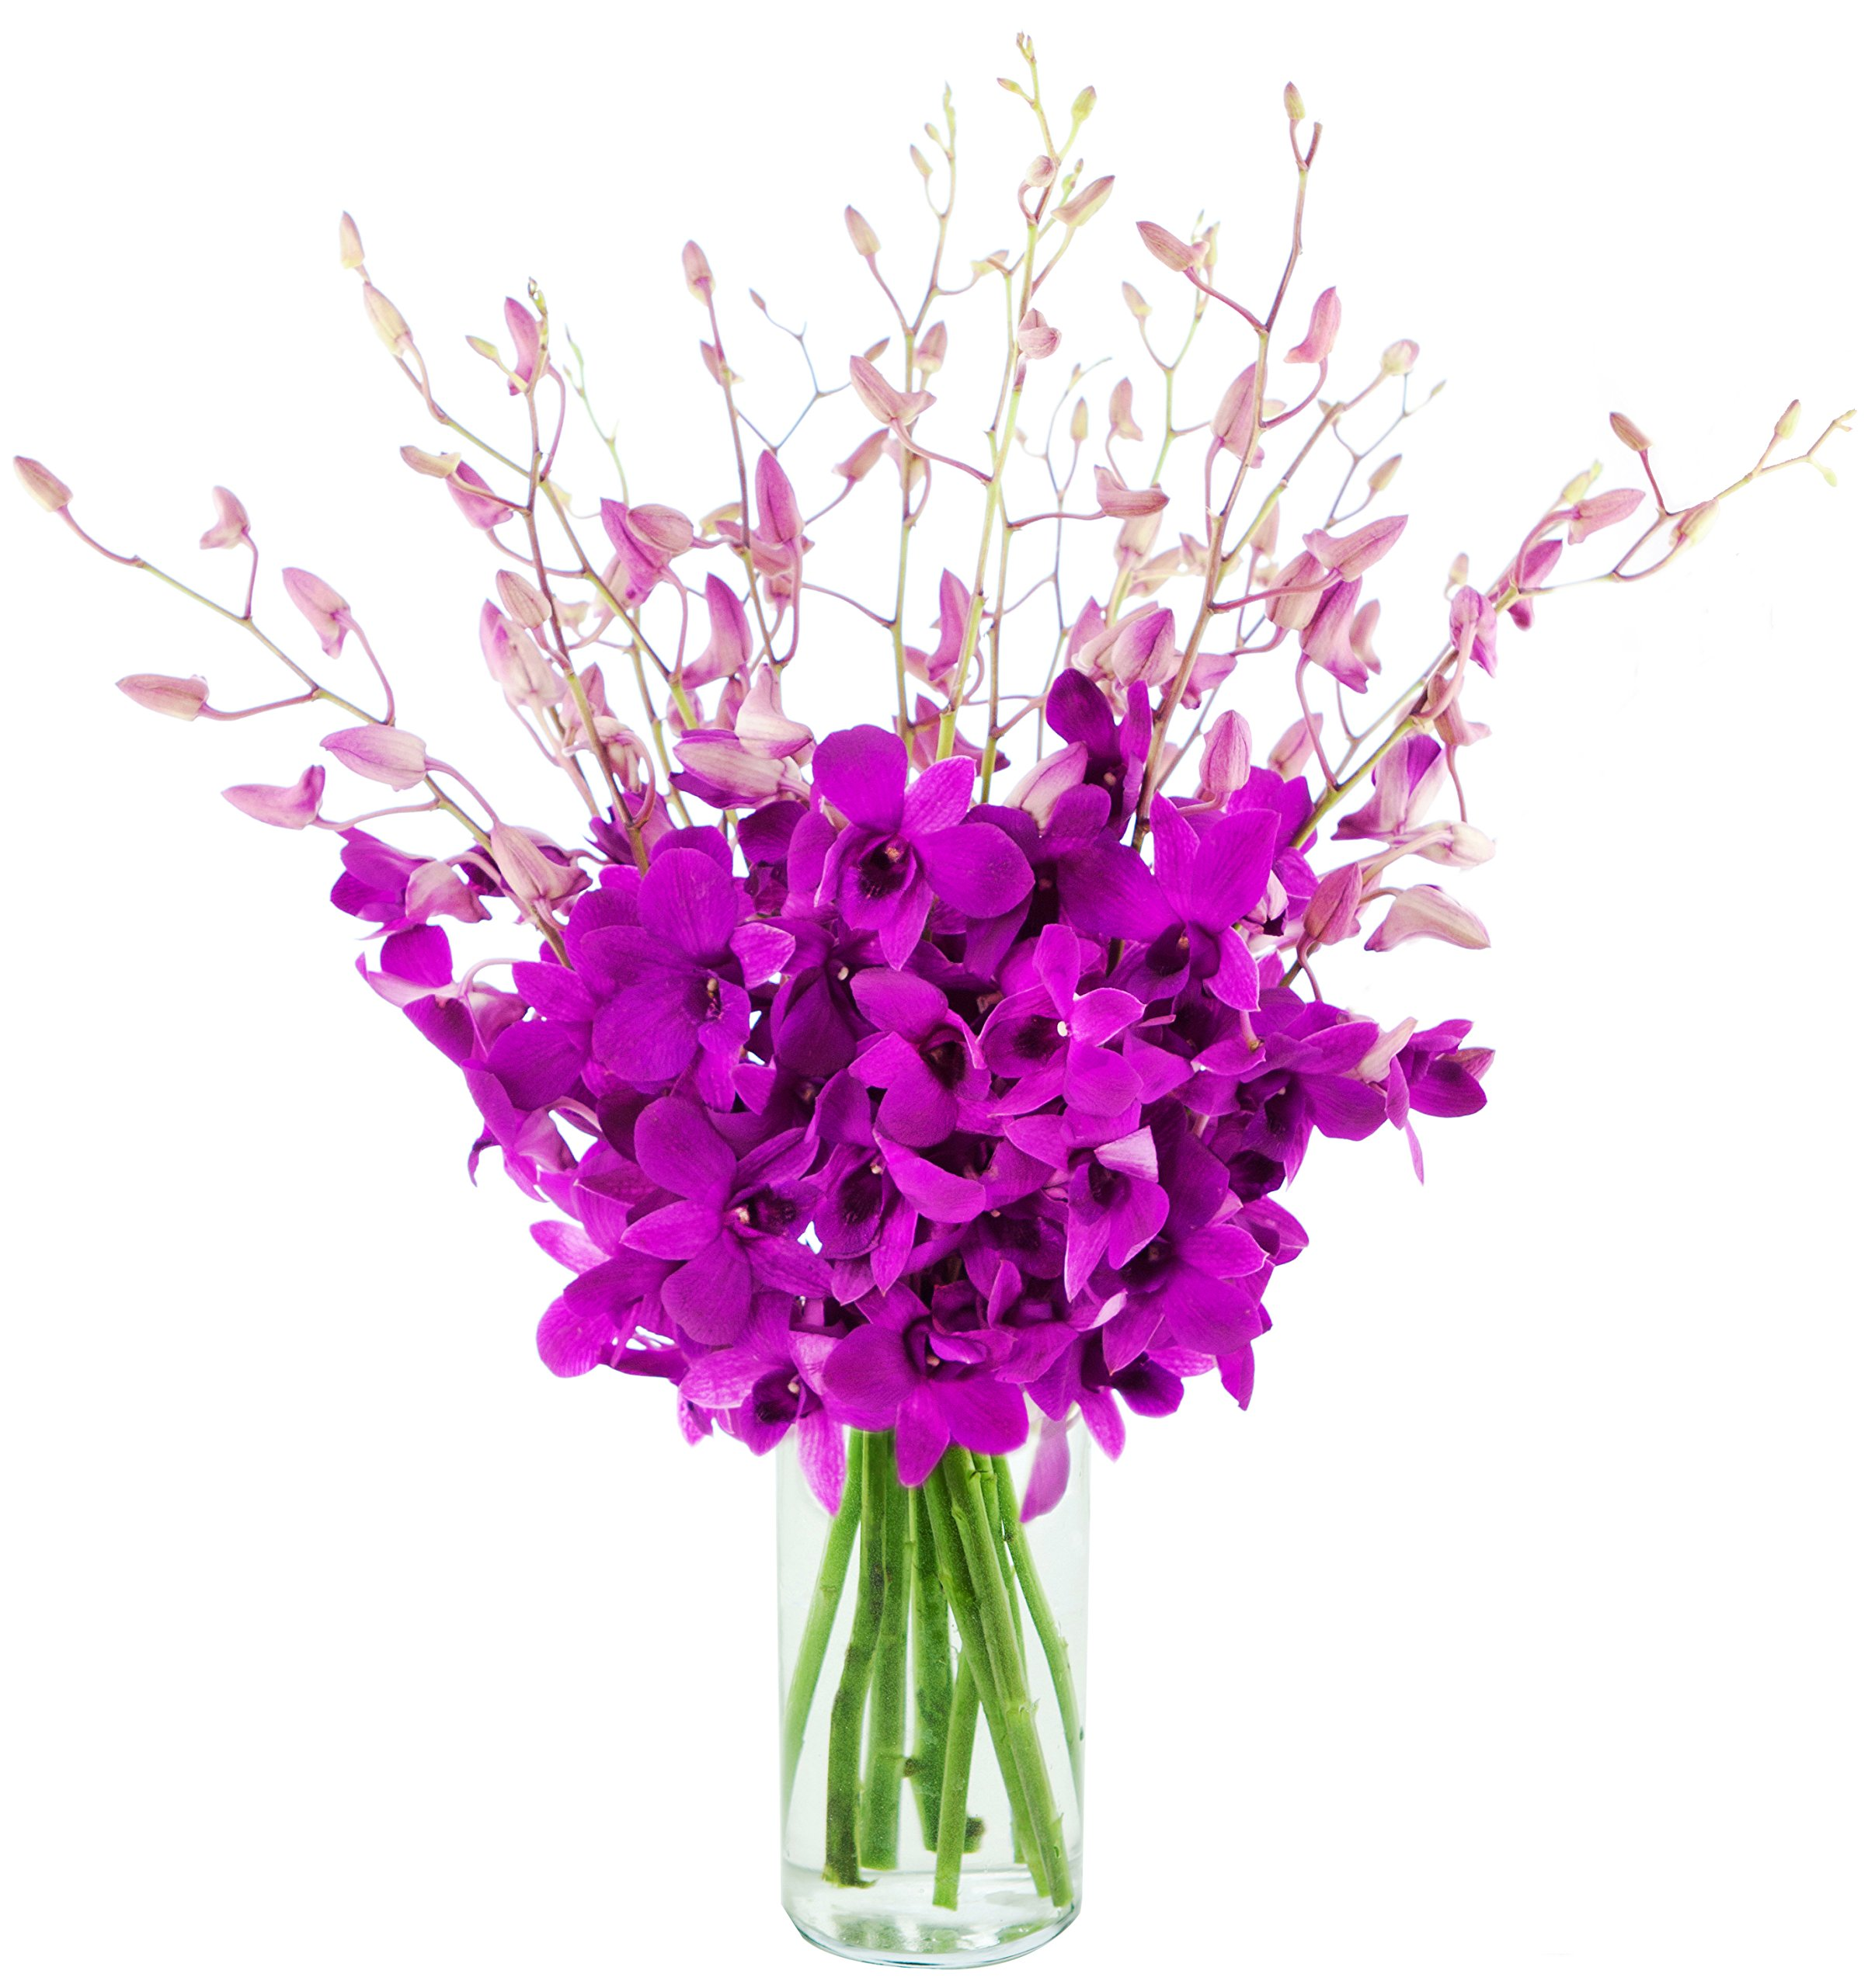 The Ultimate Orchid Bouquet Of Exotic Orchids From Thailand with Free Vase Included, 20 Purple Dendrobium